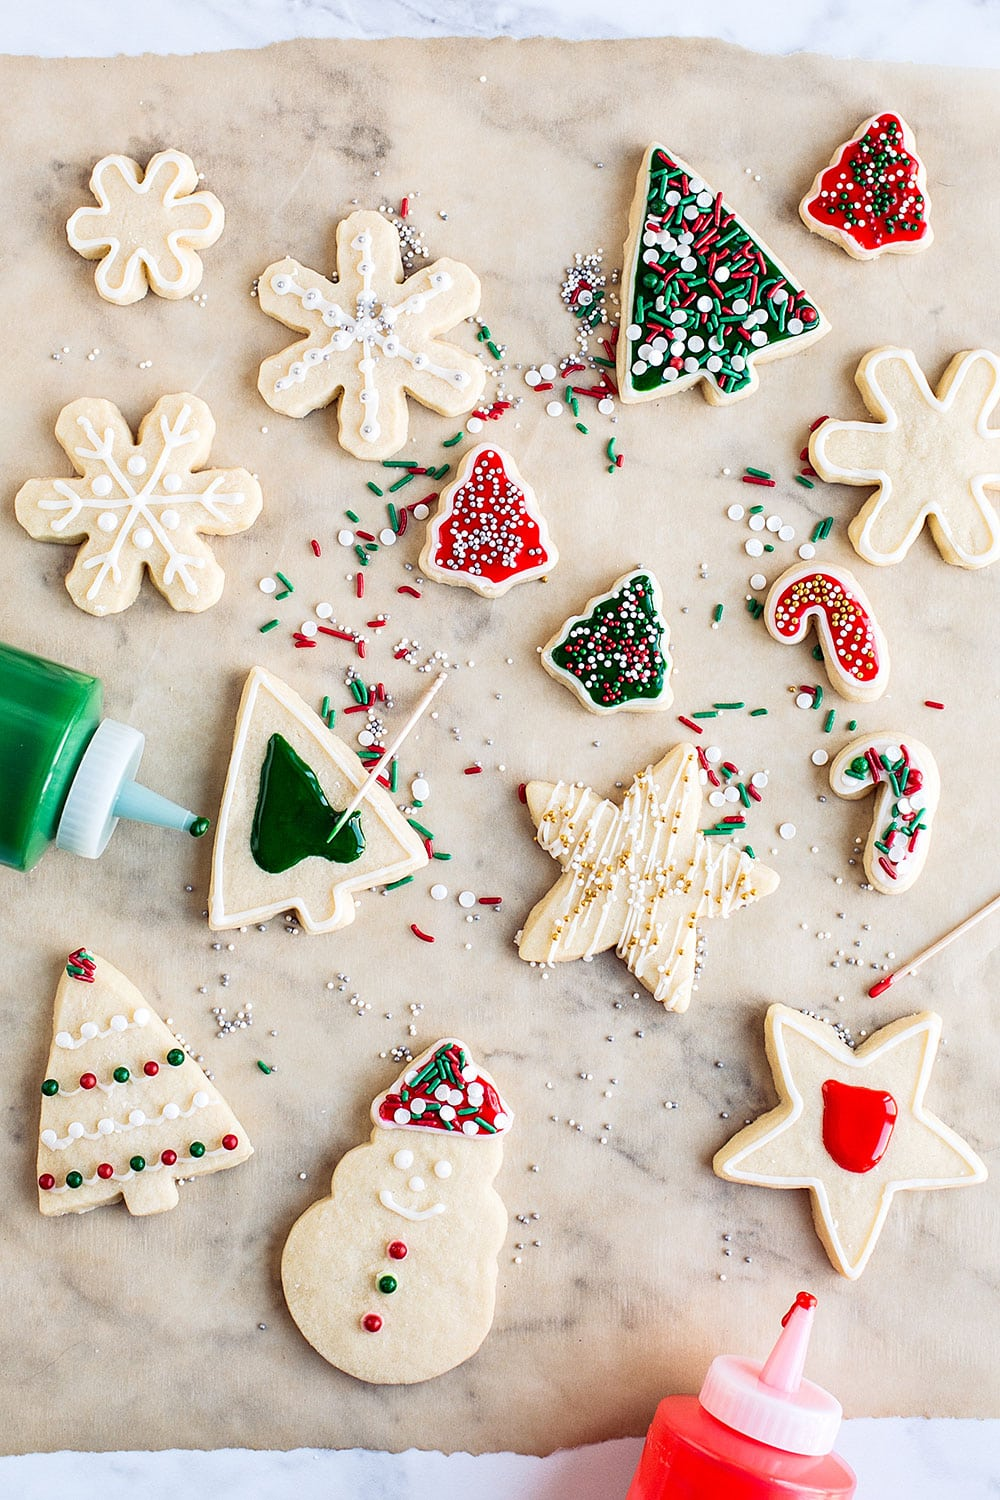 Easy Christmas Sugar Cookie Recipe - they hold their shape and the dough is a dream to work with!